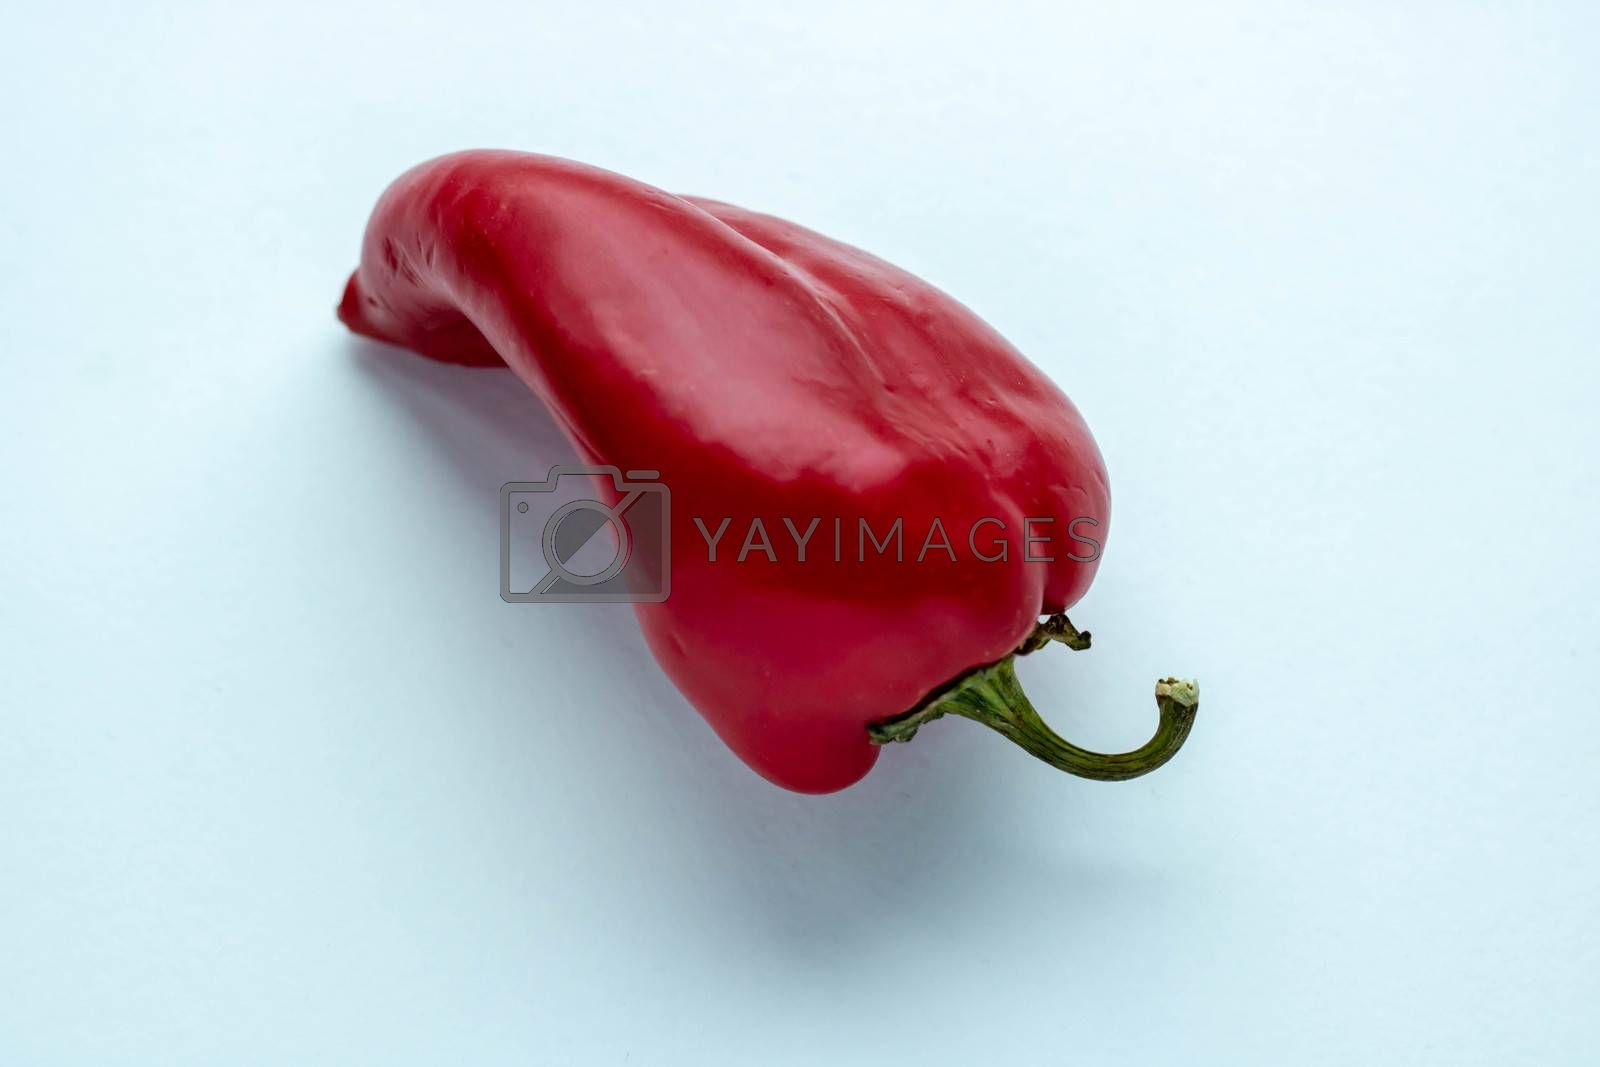 Red hot pepper on white background. Vibrant color